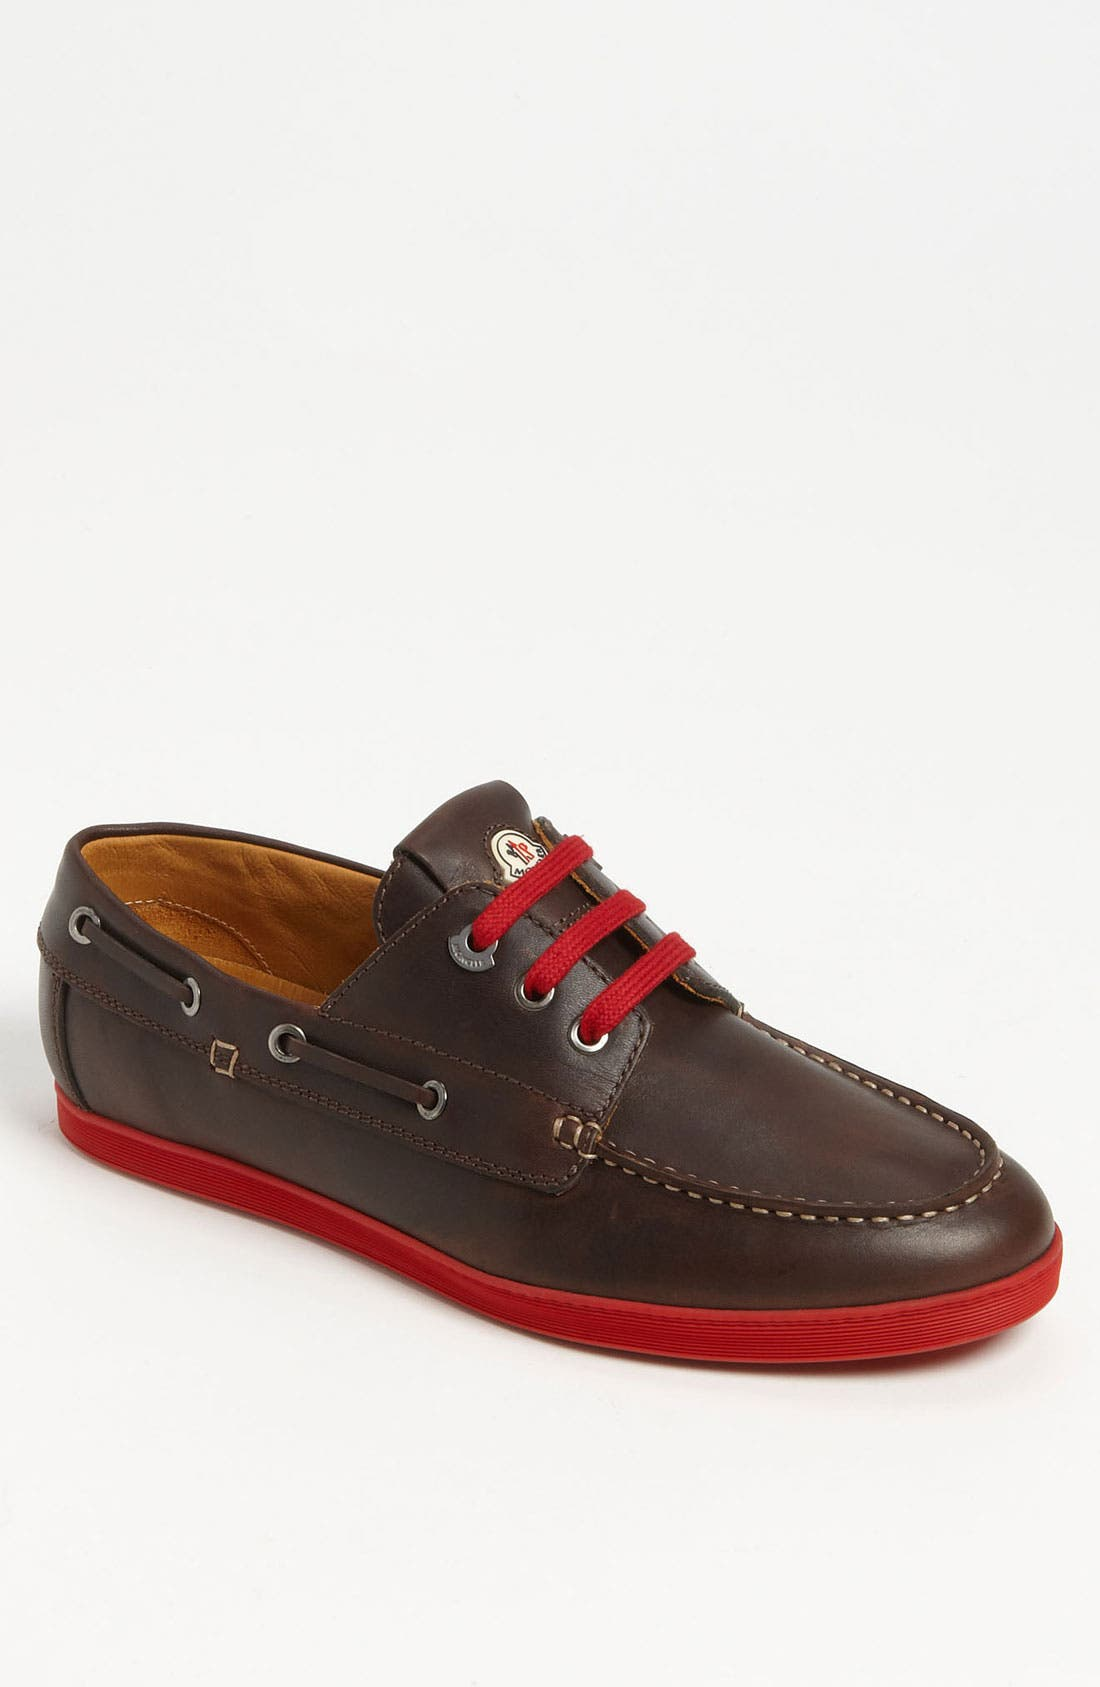 Alternate Image 1 Selected - Moncler 'Guadeloupe' Boat Shoe